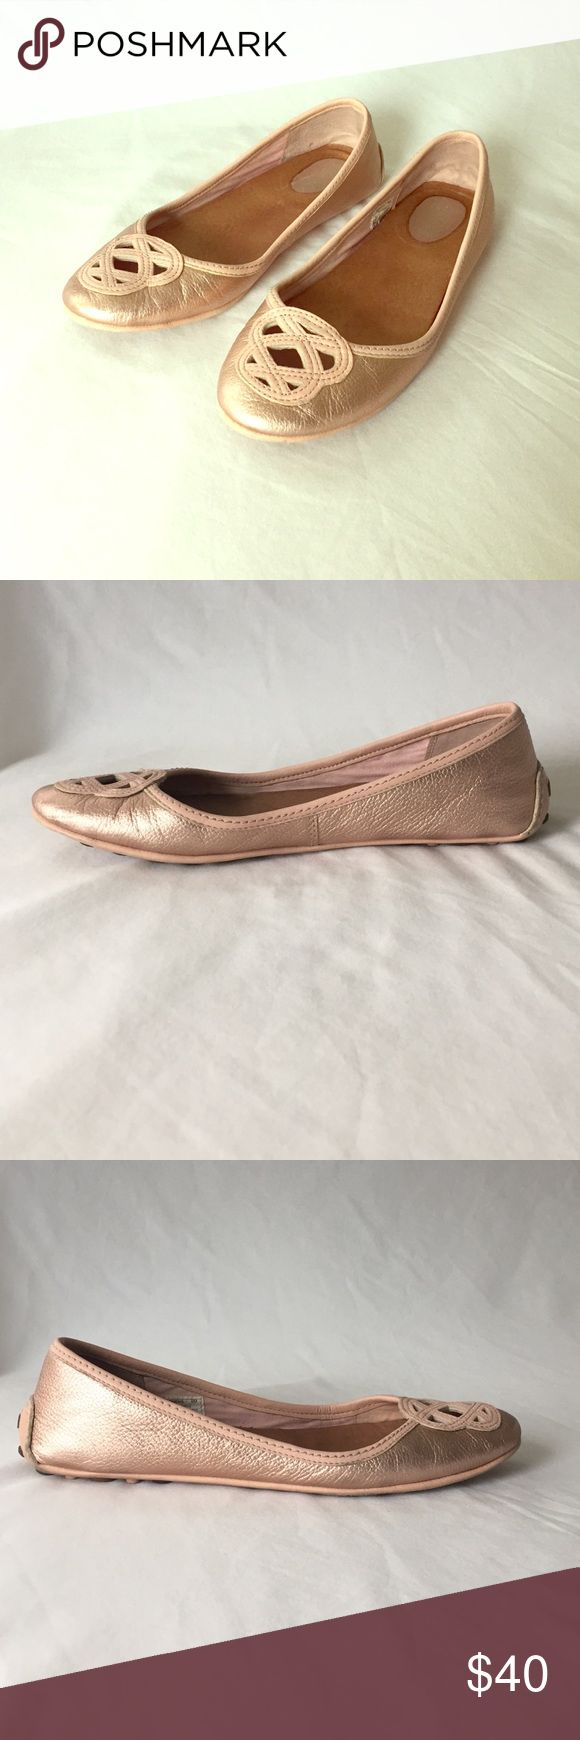 Sperry rose gold flats Sperry rose gold flats. How fun and different is this color?! Sperry Shoes Flats & Loafers